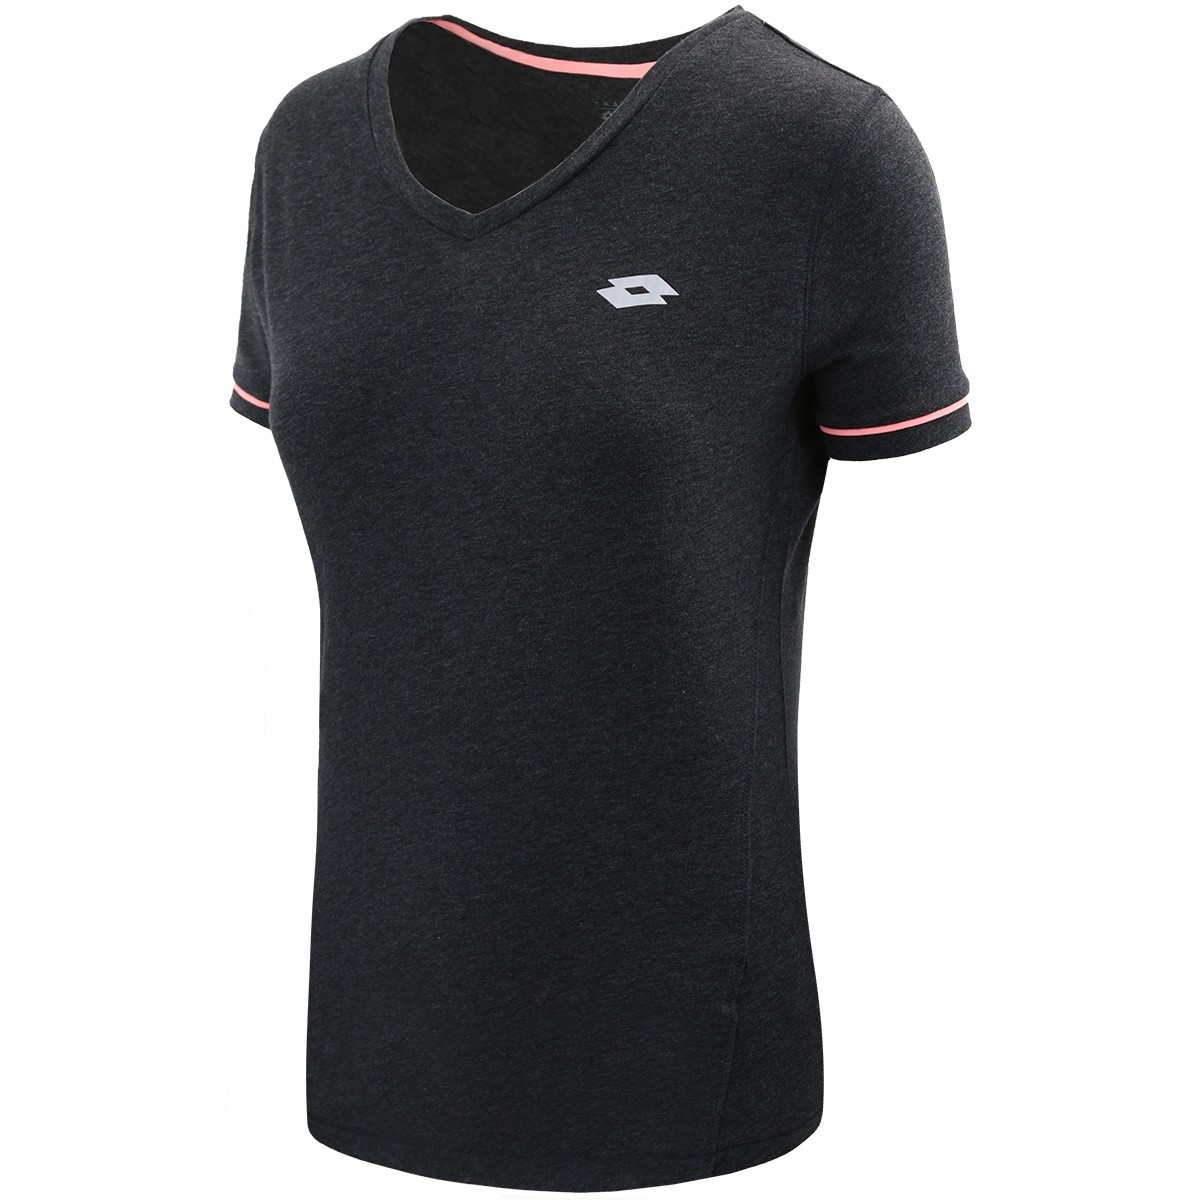 T-SHIRT LOTTO FEMME INDY IV